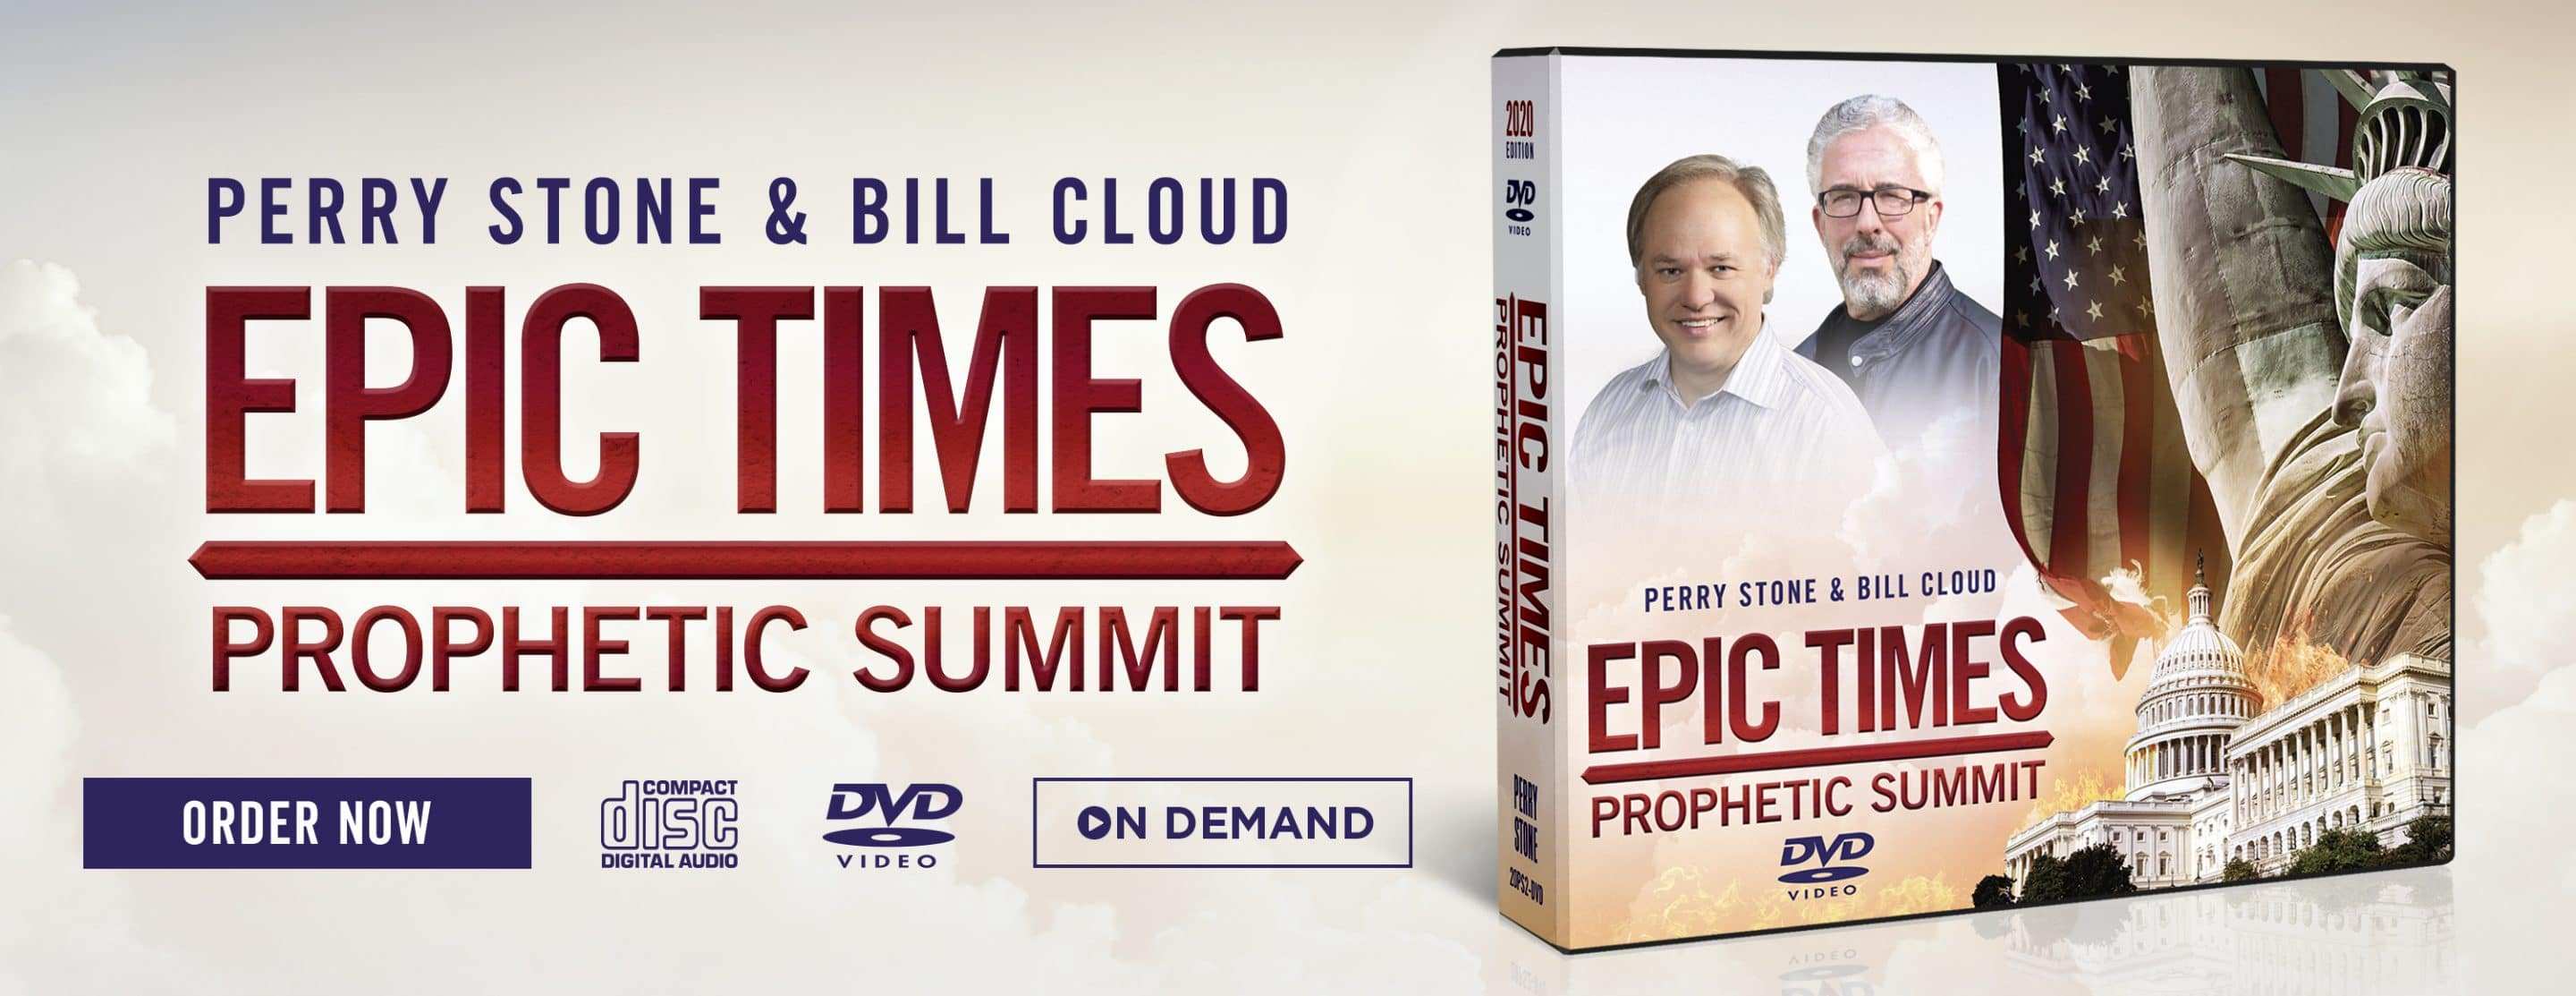 2020 Epic Times Prophetic Summit Product – Website Banner